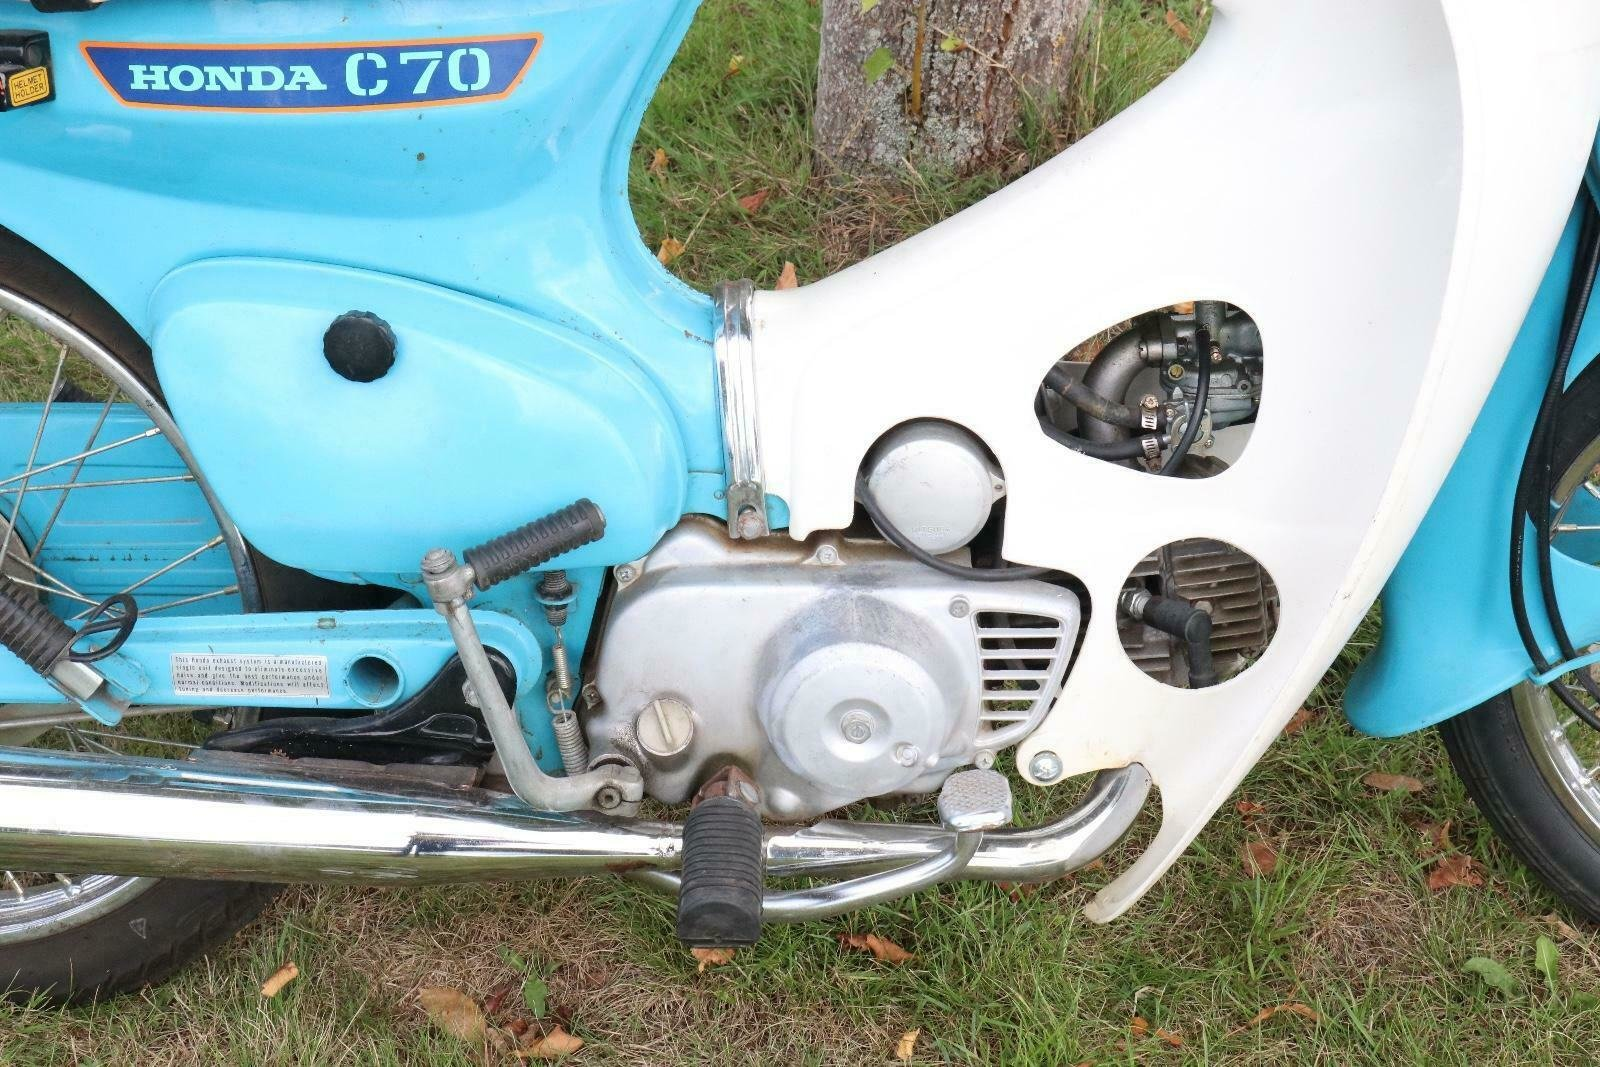 Honda C70 1980 runs and rides perfectly commuter or the back For Sale (picture 2 of 6)